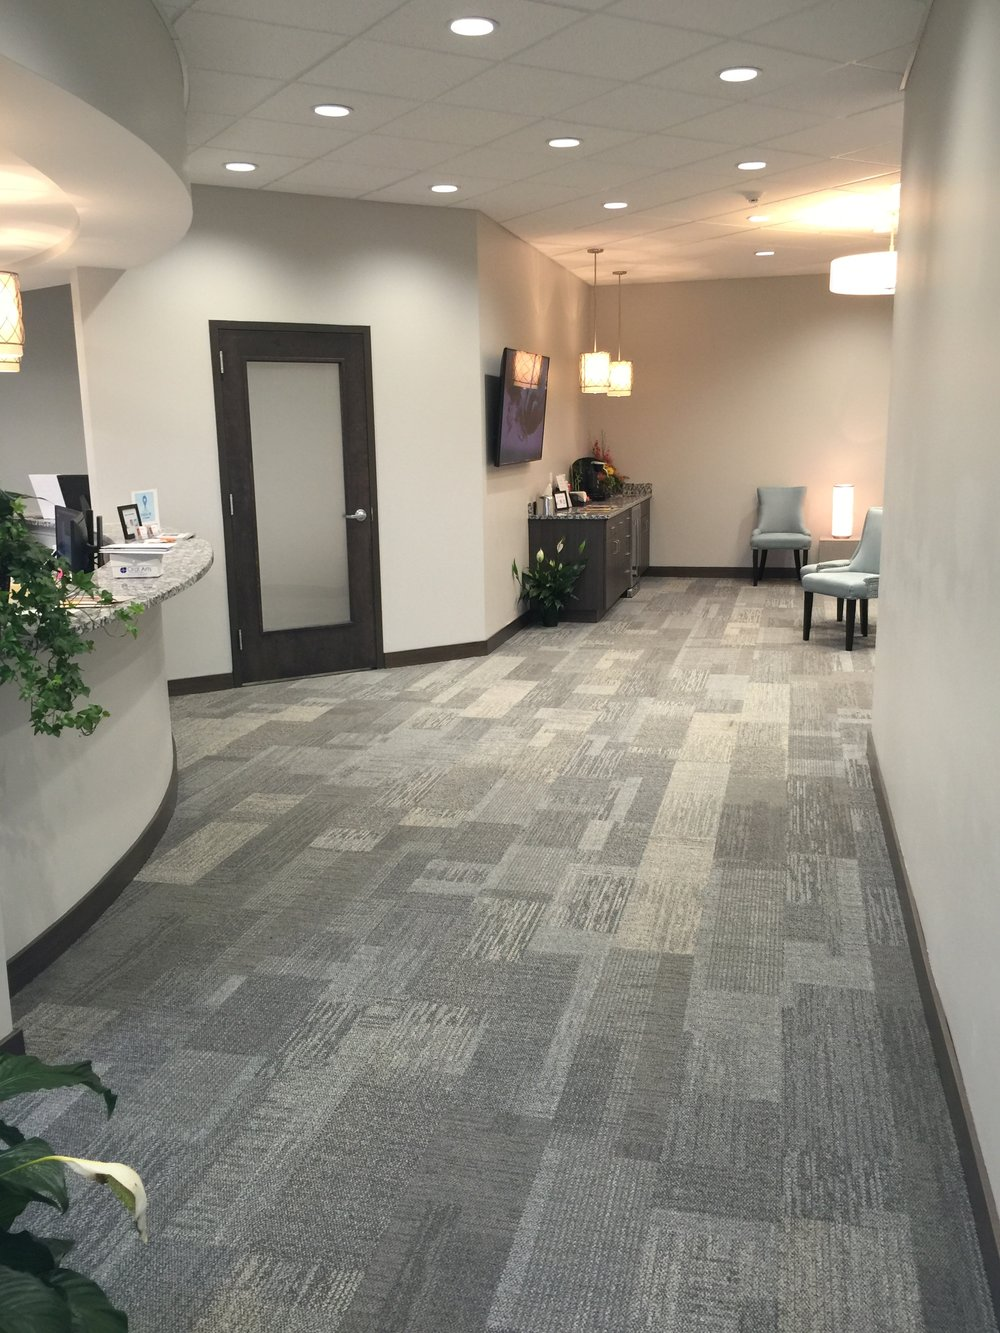 summitfamilydental_lobby-1.JPG